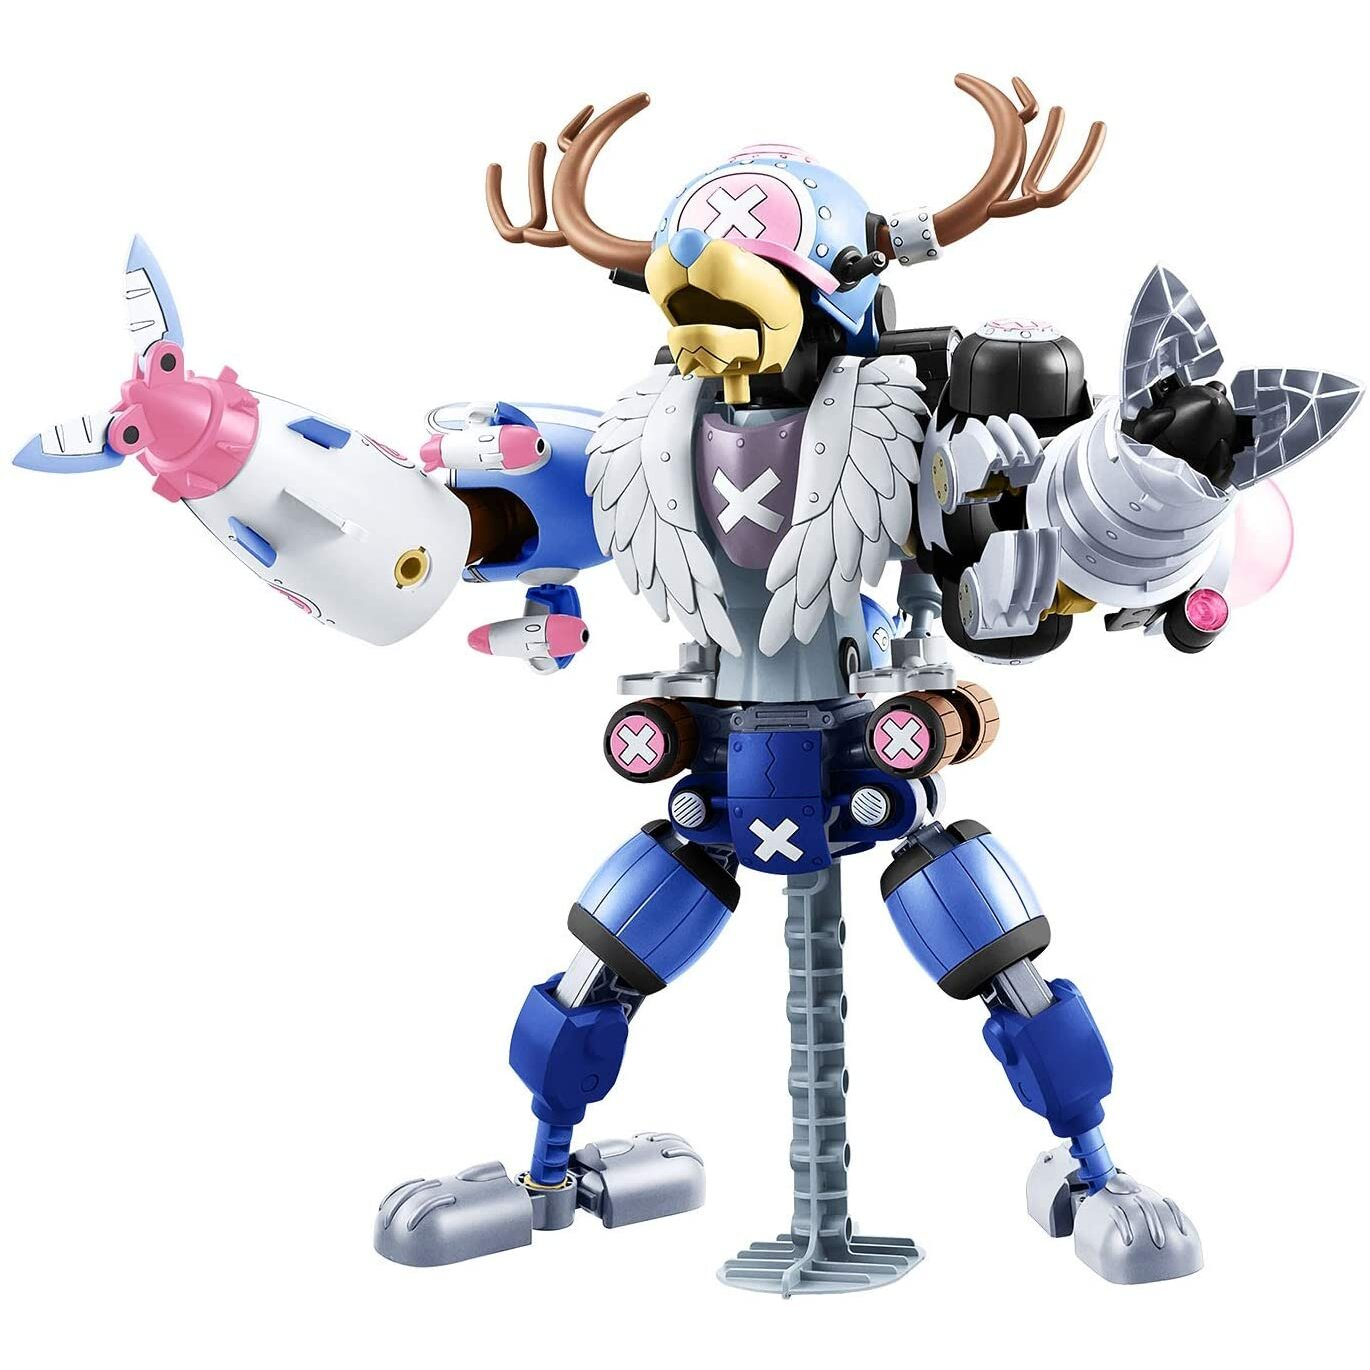 Chopper Robo (One Piece Stampede Color Ver.) 20th Anniversary Bandai Model Kit (1)